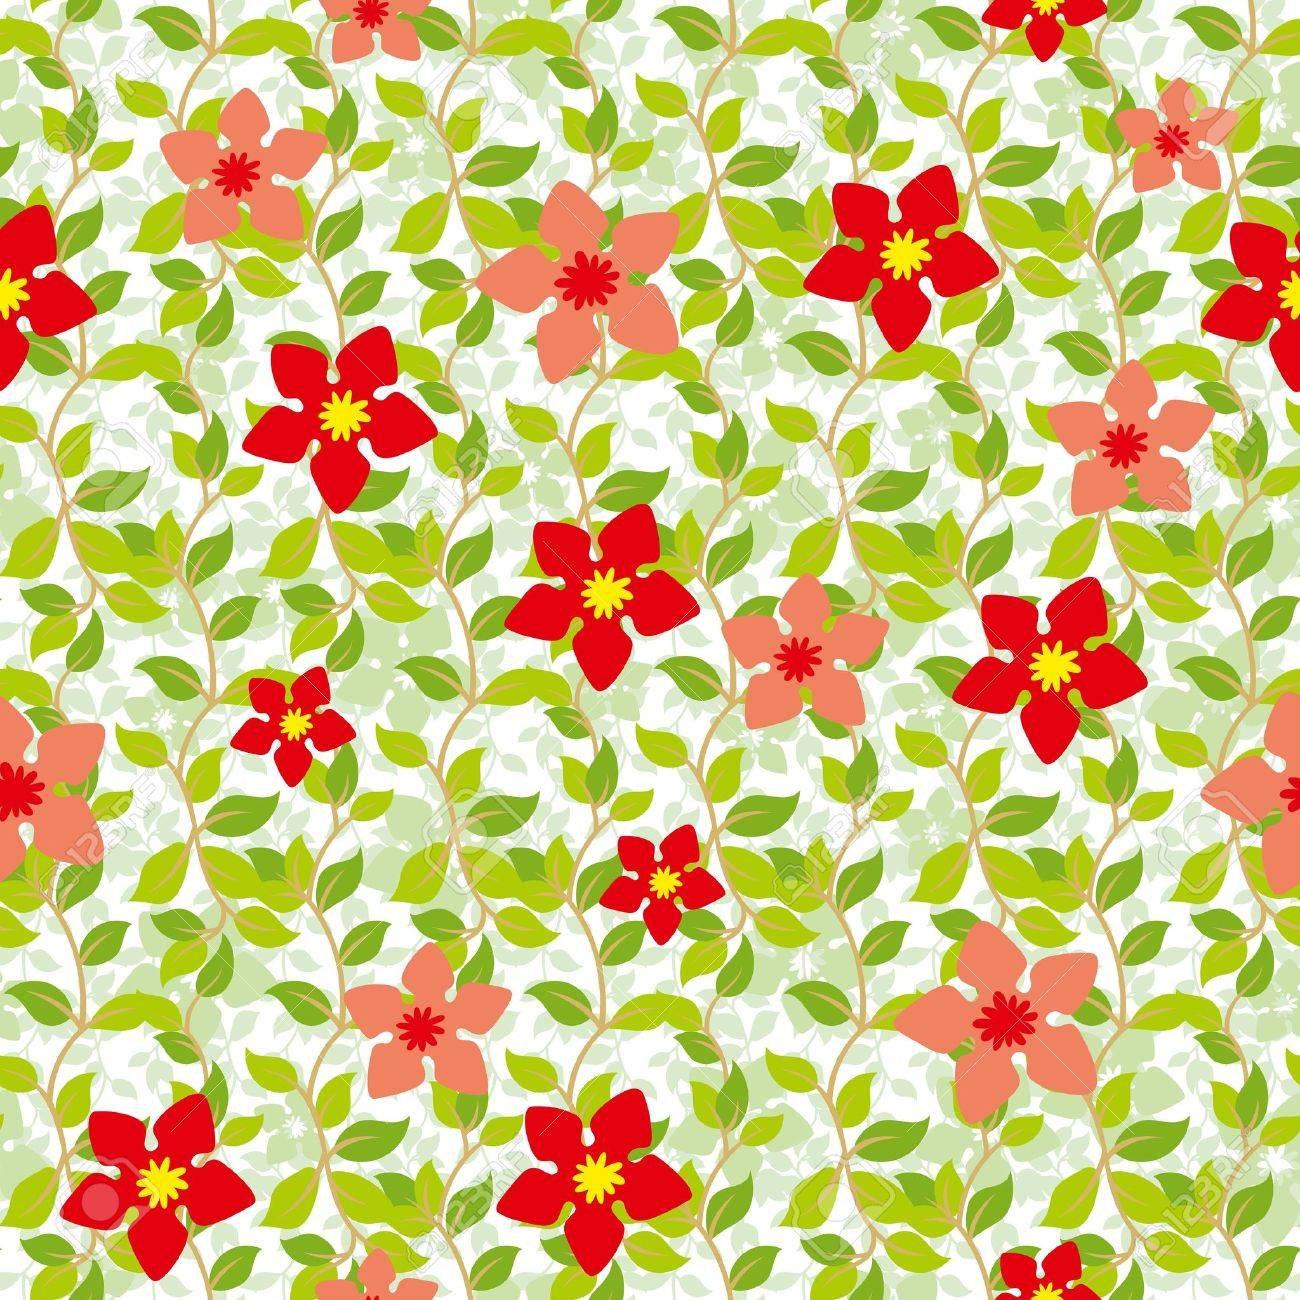 Seamless background from a floral ornament, Fashionable modern wallpaper or textile - 14665729